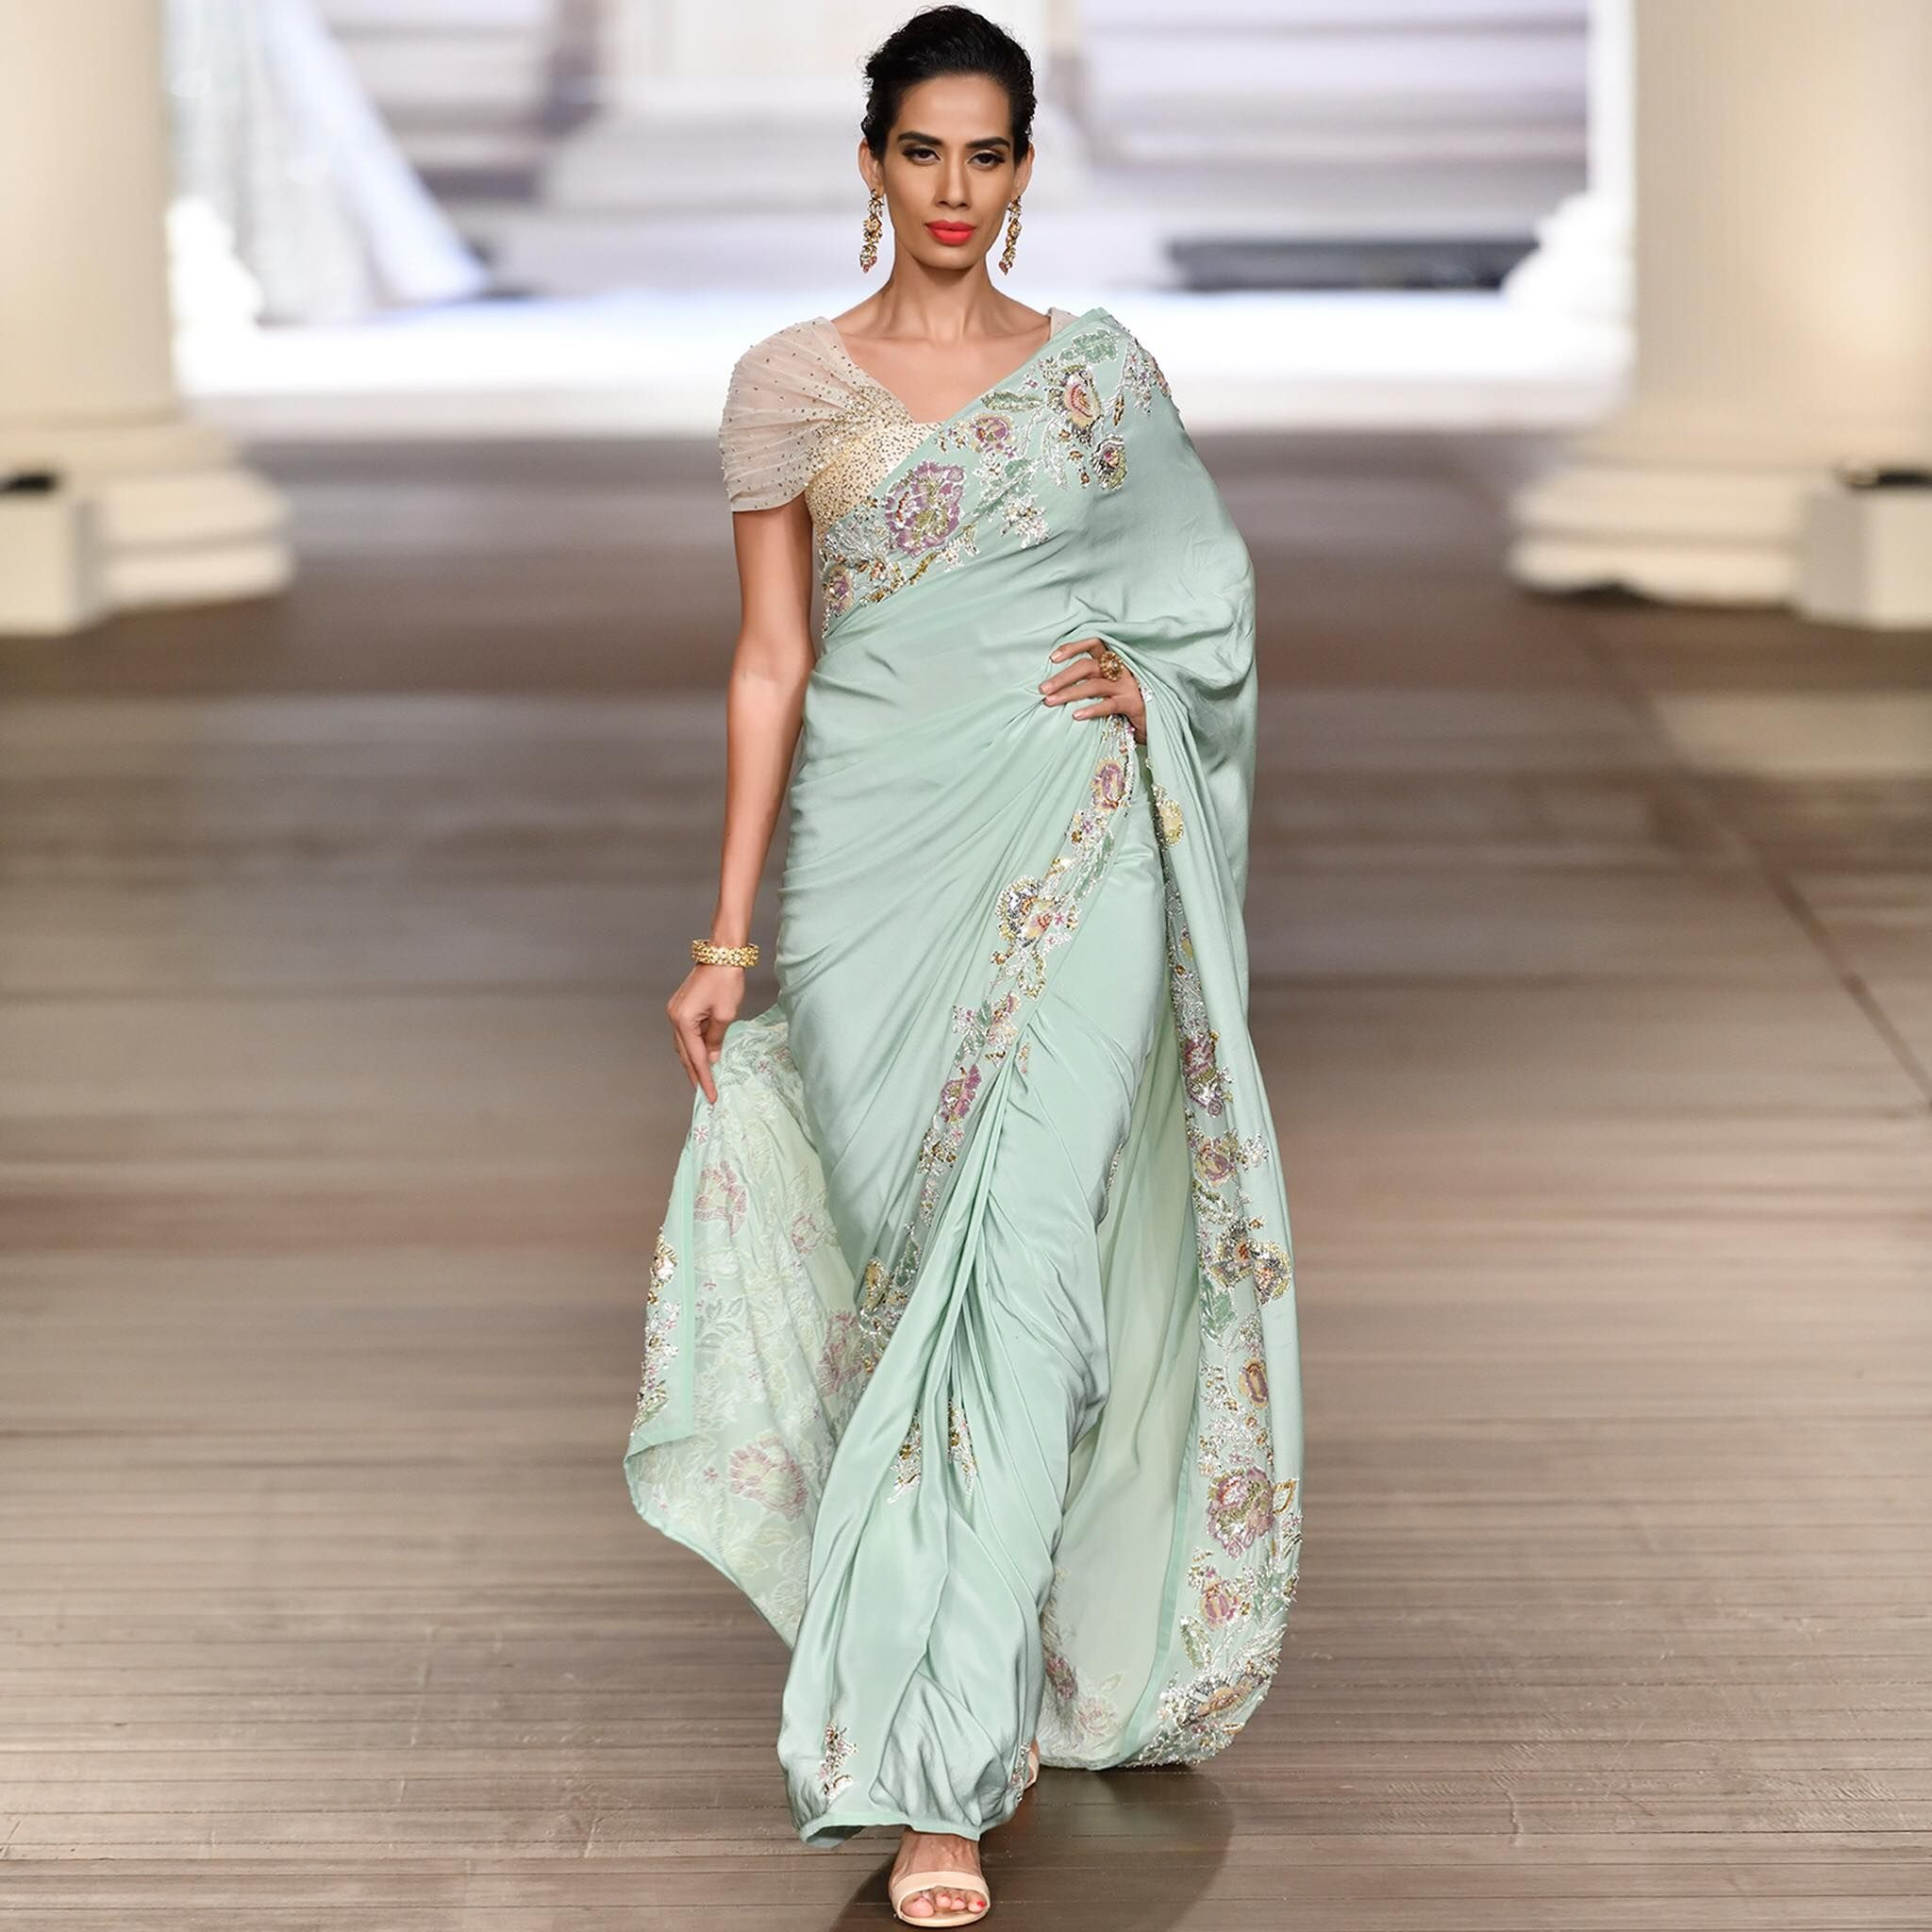 f1a05262b3a92 Shyamal Bhumika Collections. Contact : 91-9833520520 . | Embroidery ...